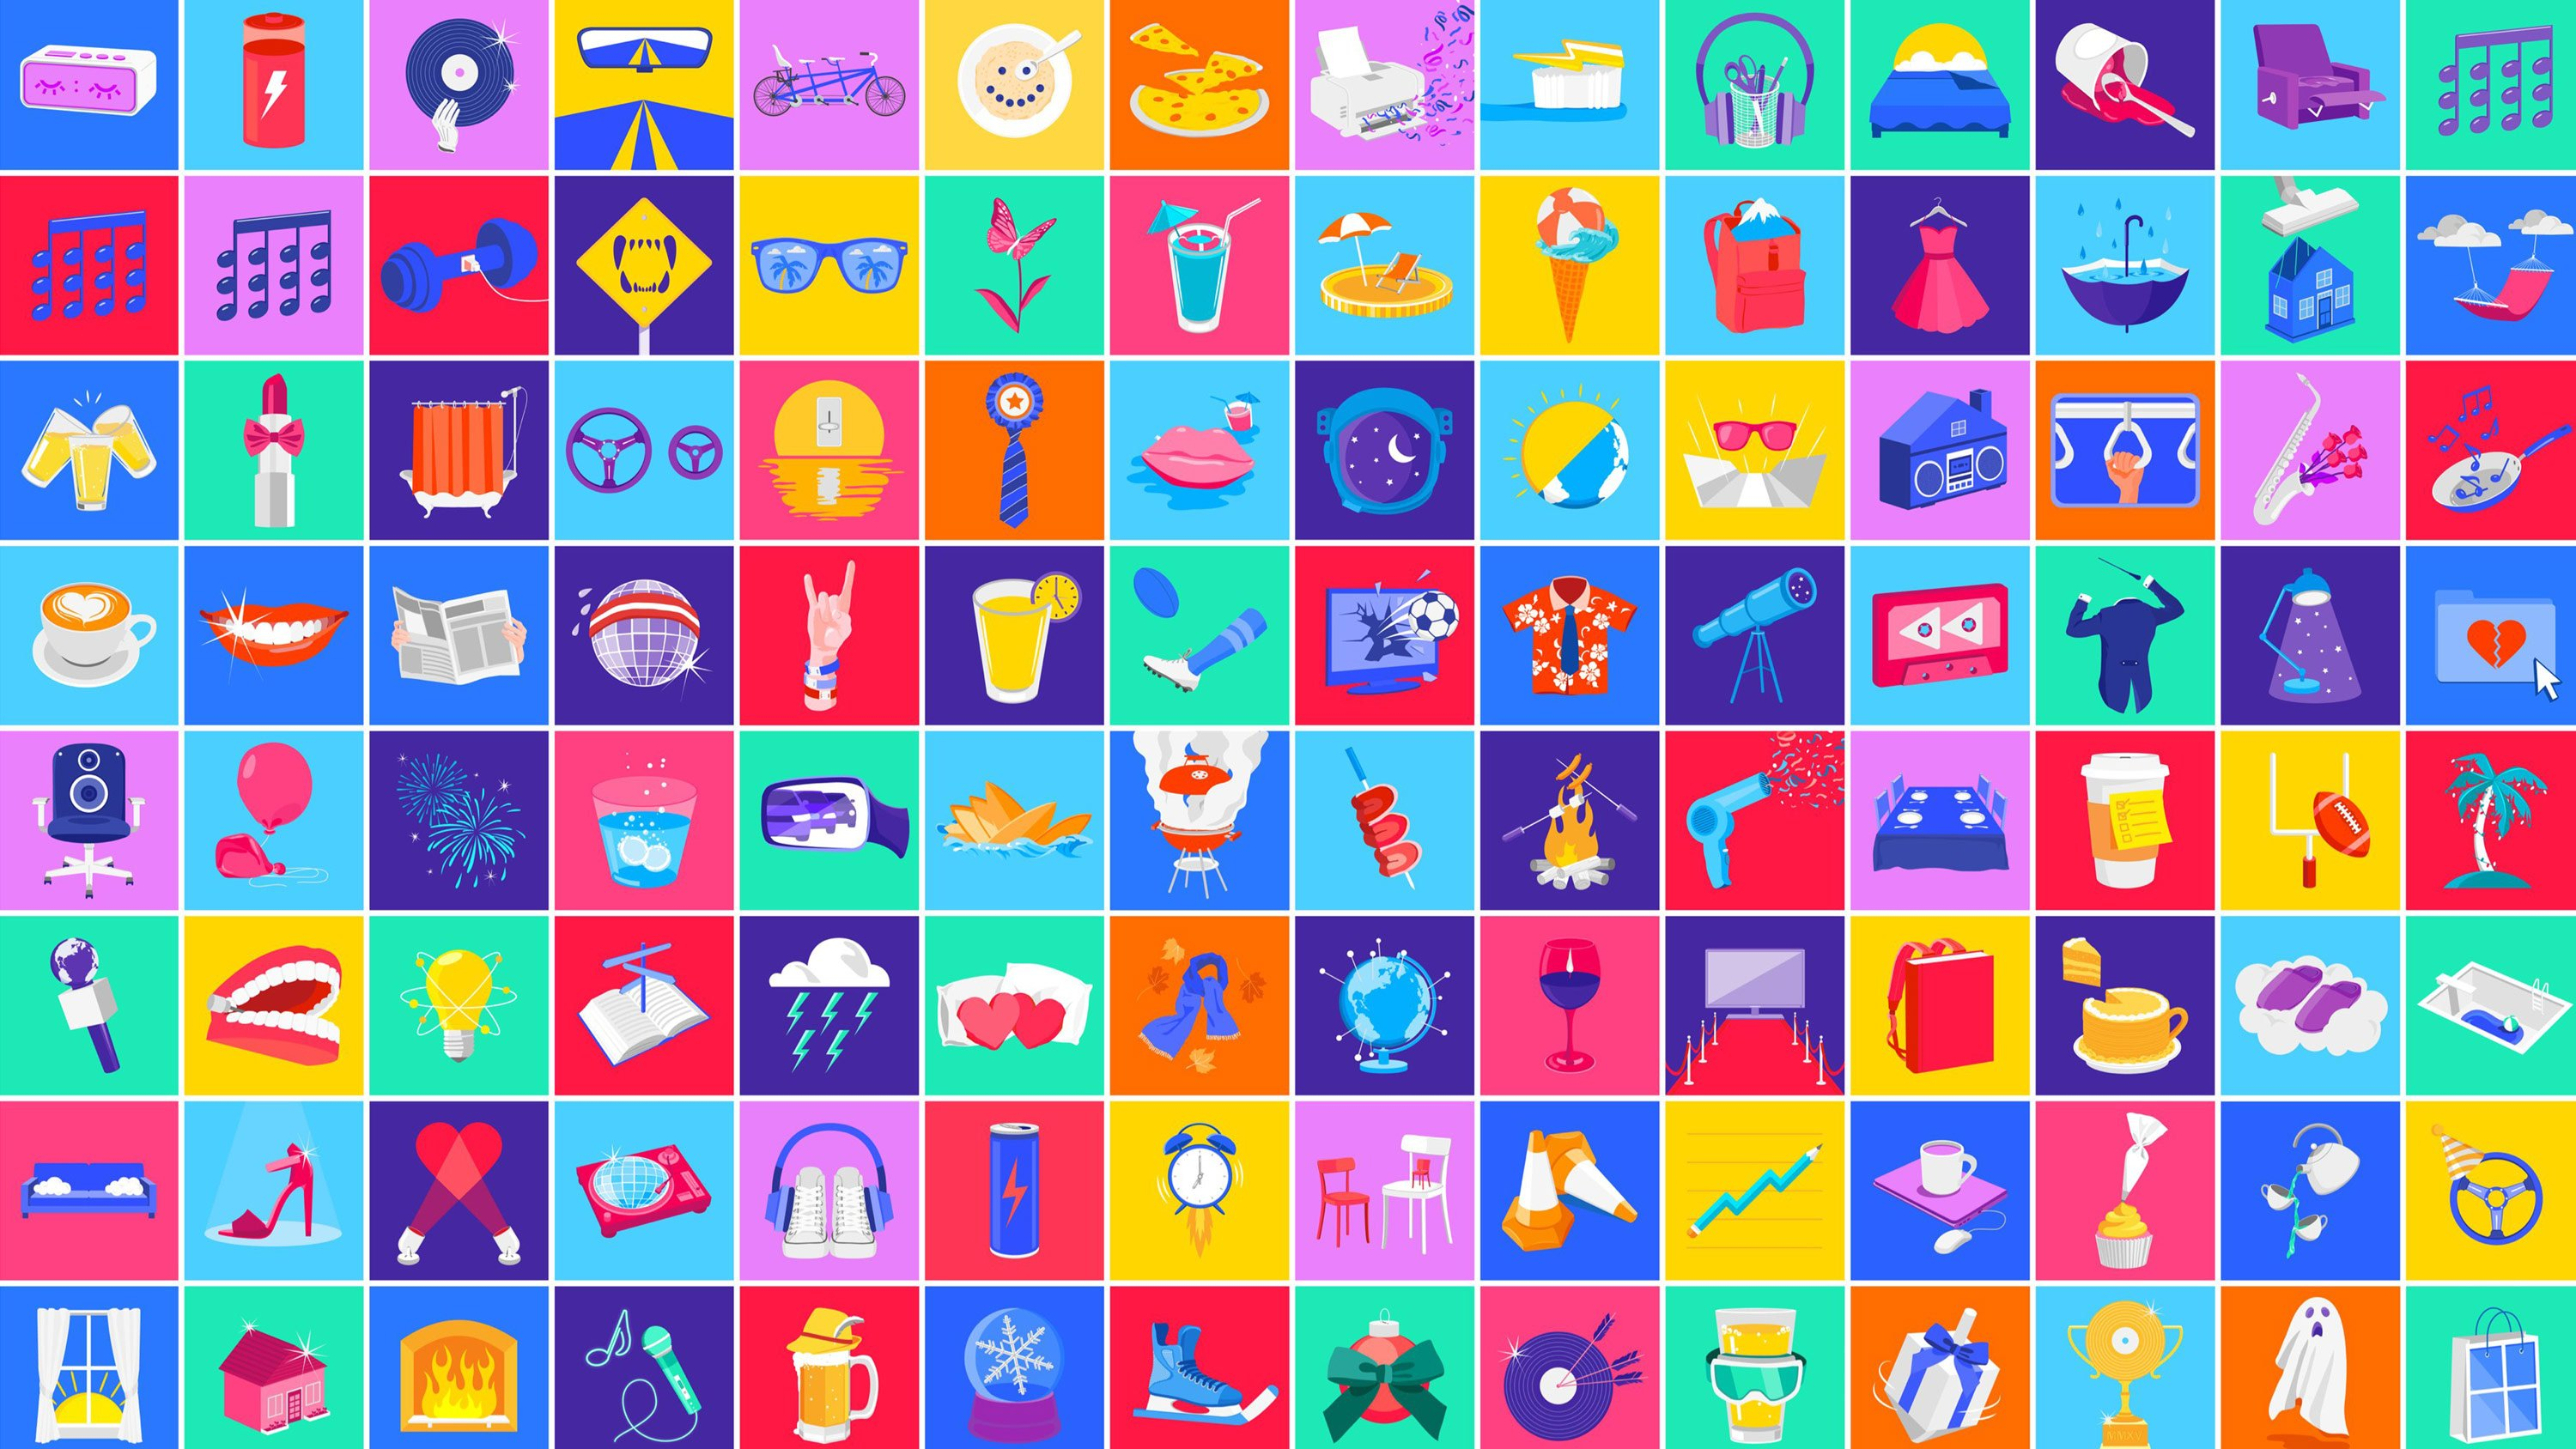 Grid of every icon made for Google Play Music by RoAndCo Studio. Sunglasses, beach ball, lemonade, light bulb, chairs, traffic cones, palm tree, dress, flowers, shopping bag.